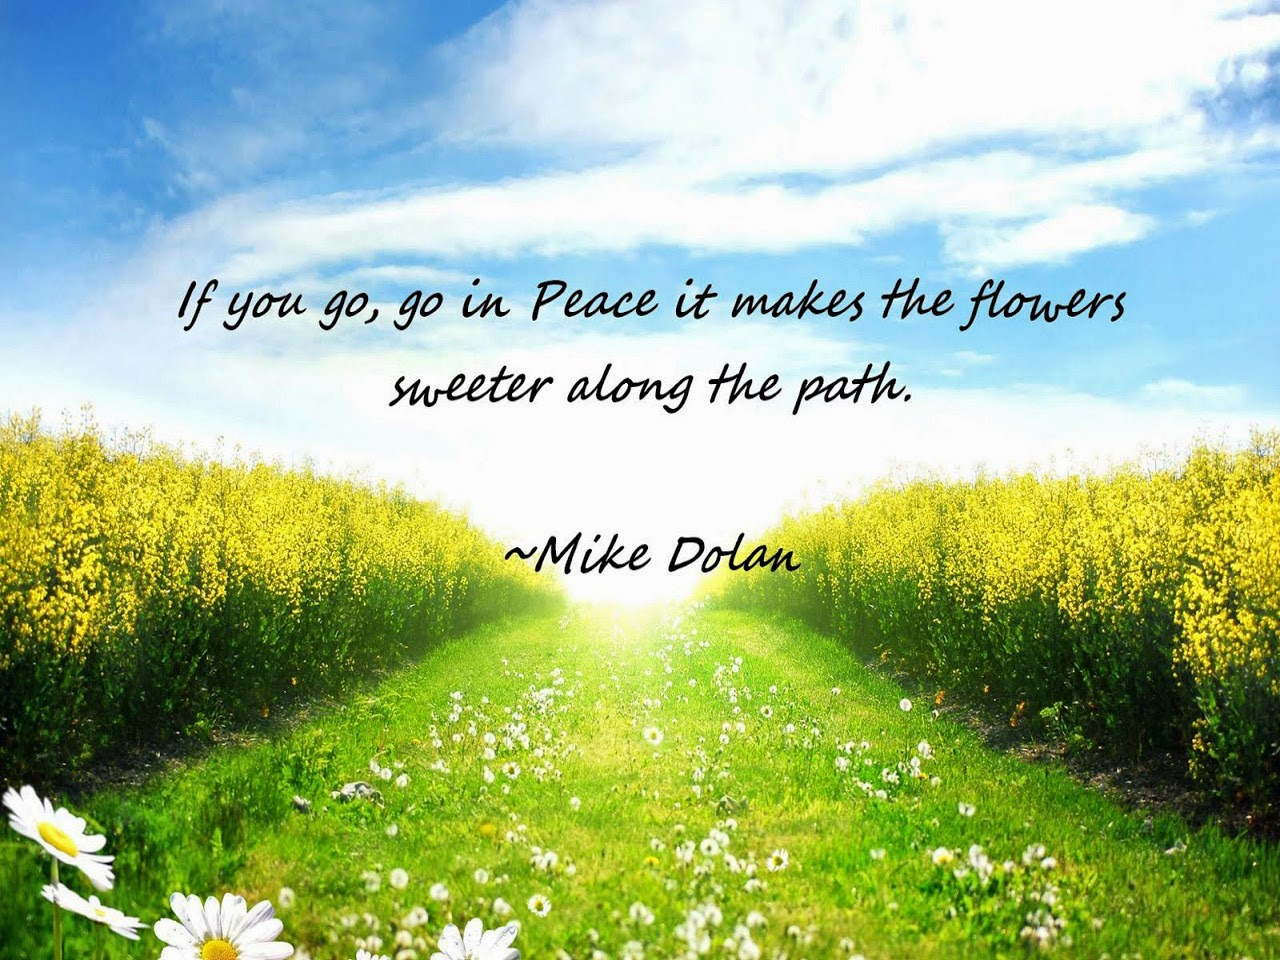 Peace Quotes: Peace Quotes And Sayings With Images For FB Sharing